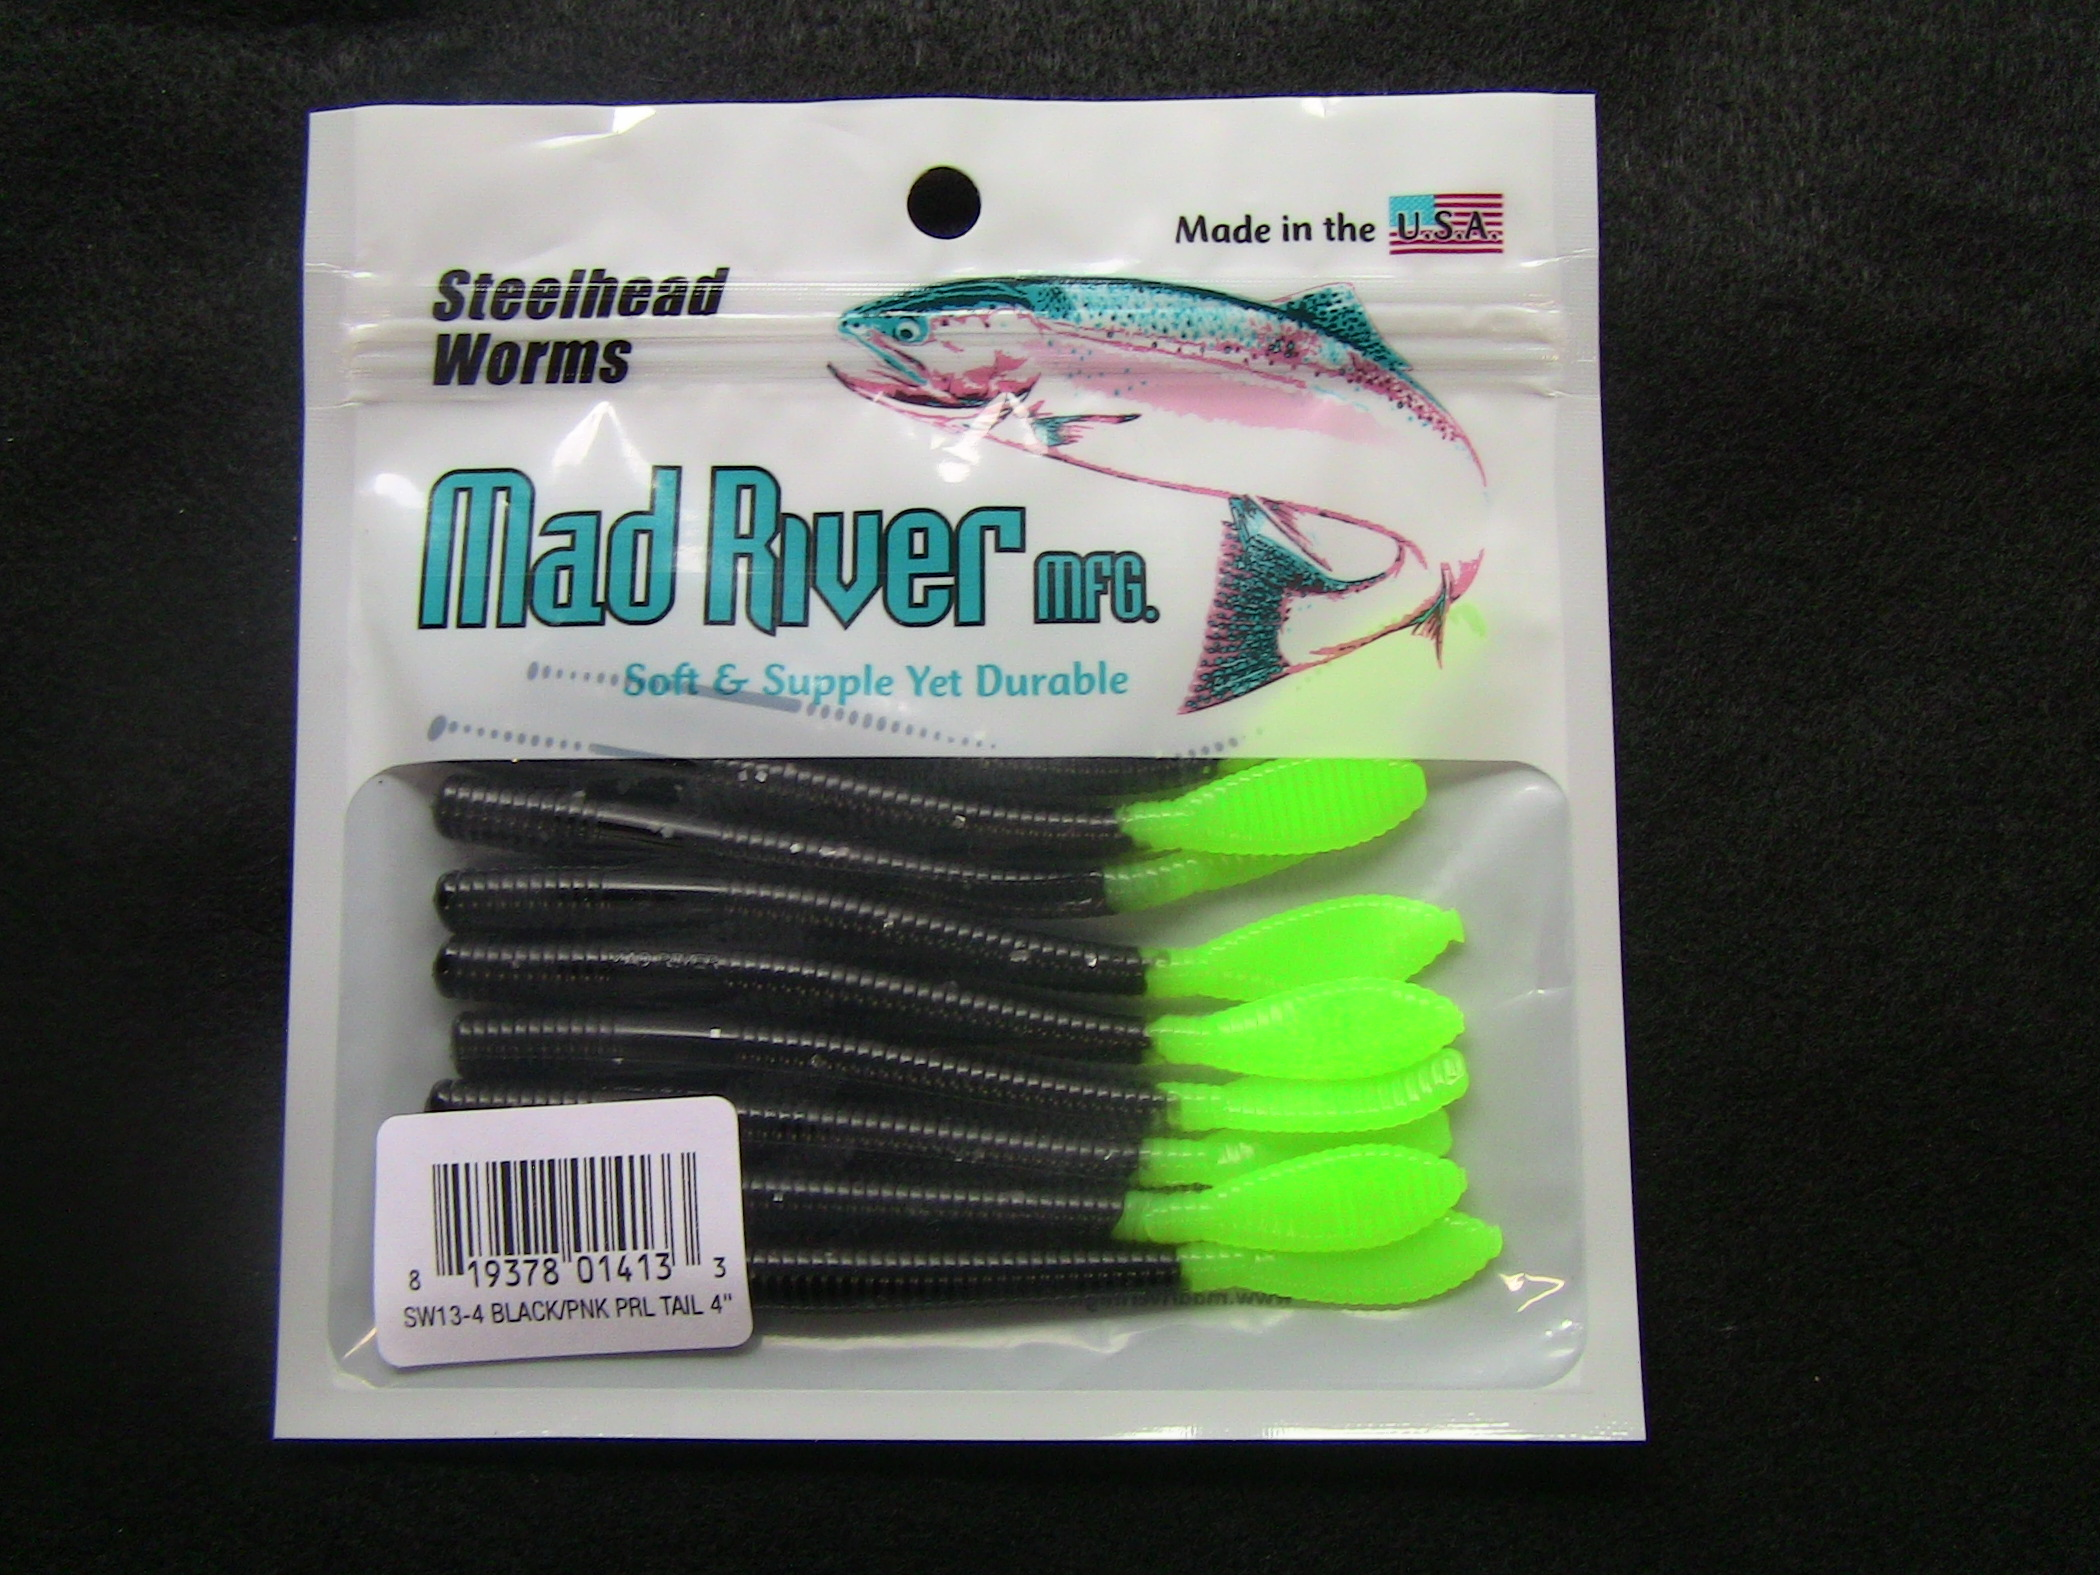 Steelhead Worms: Green Tailed Skunk